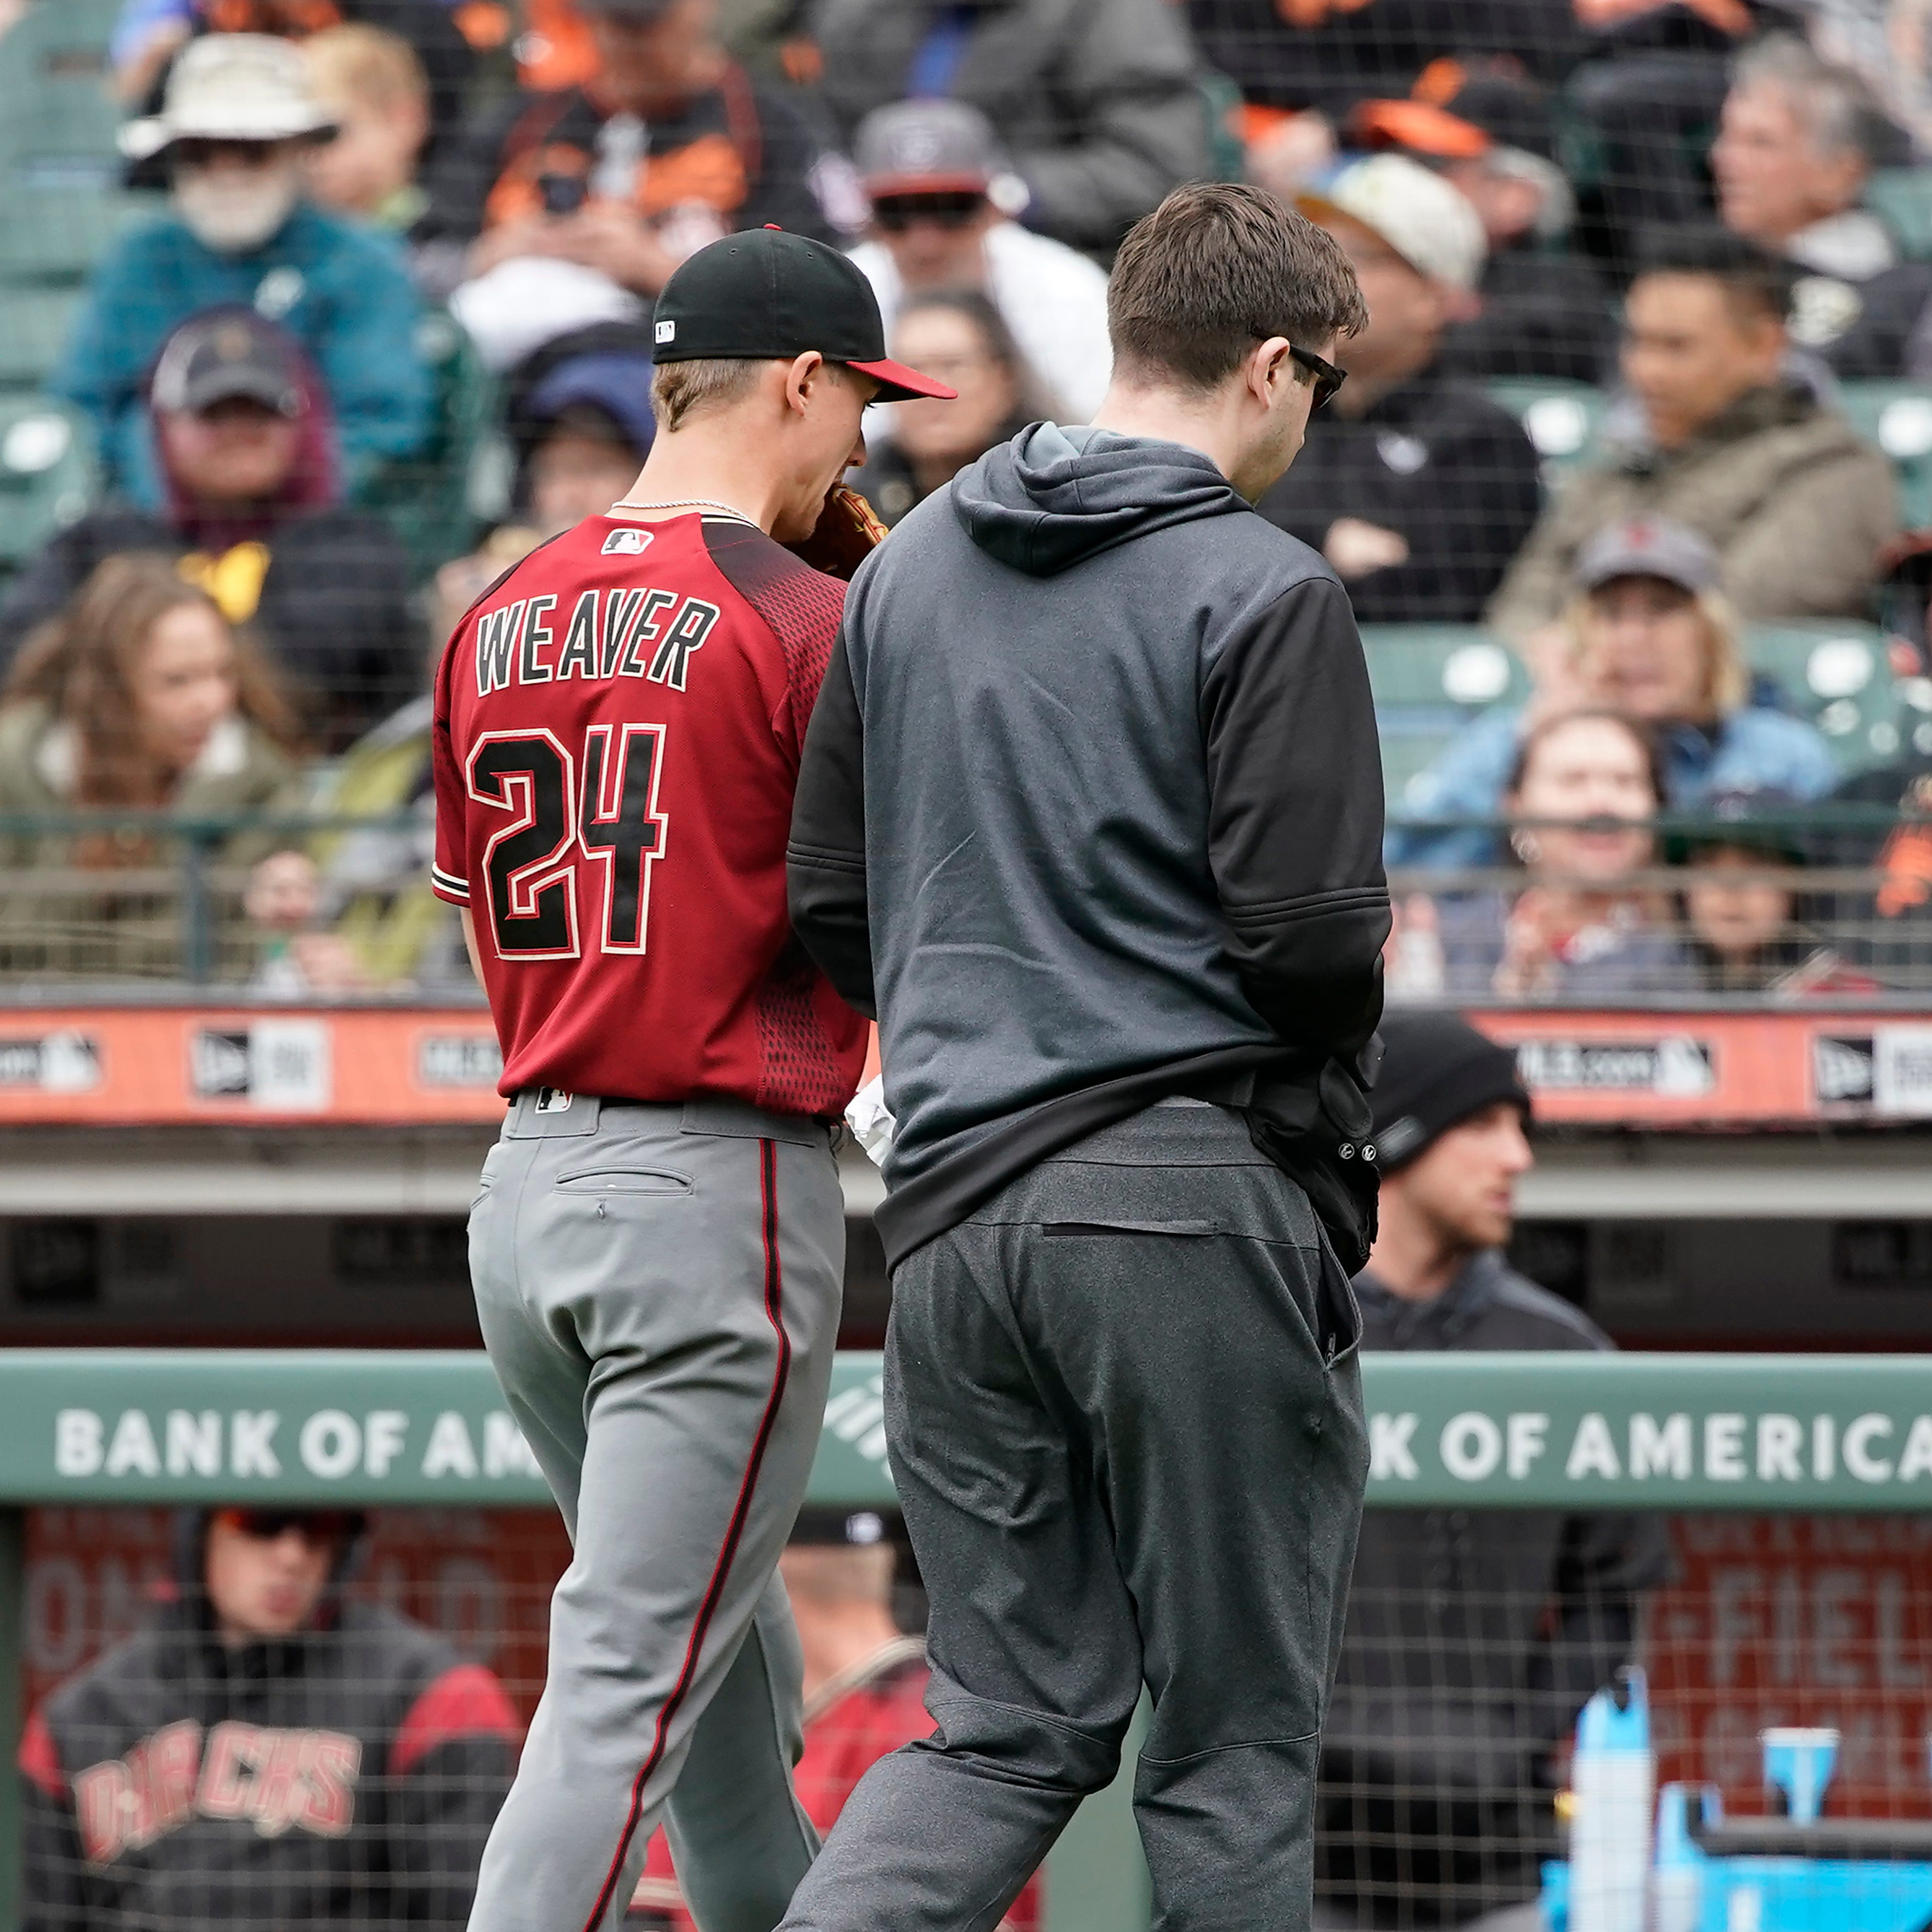 Diamondbacks sweep Giants, but Luke Weaver leaves start with right forearm tightness